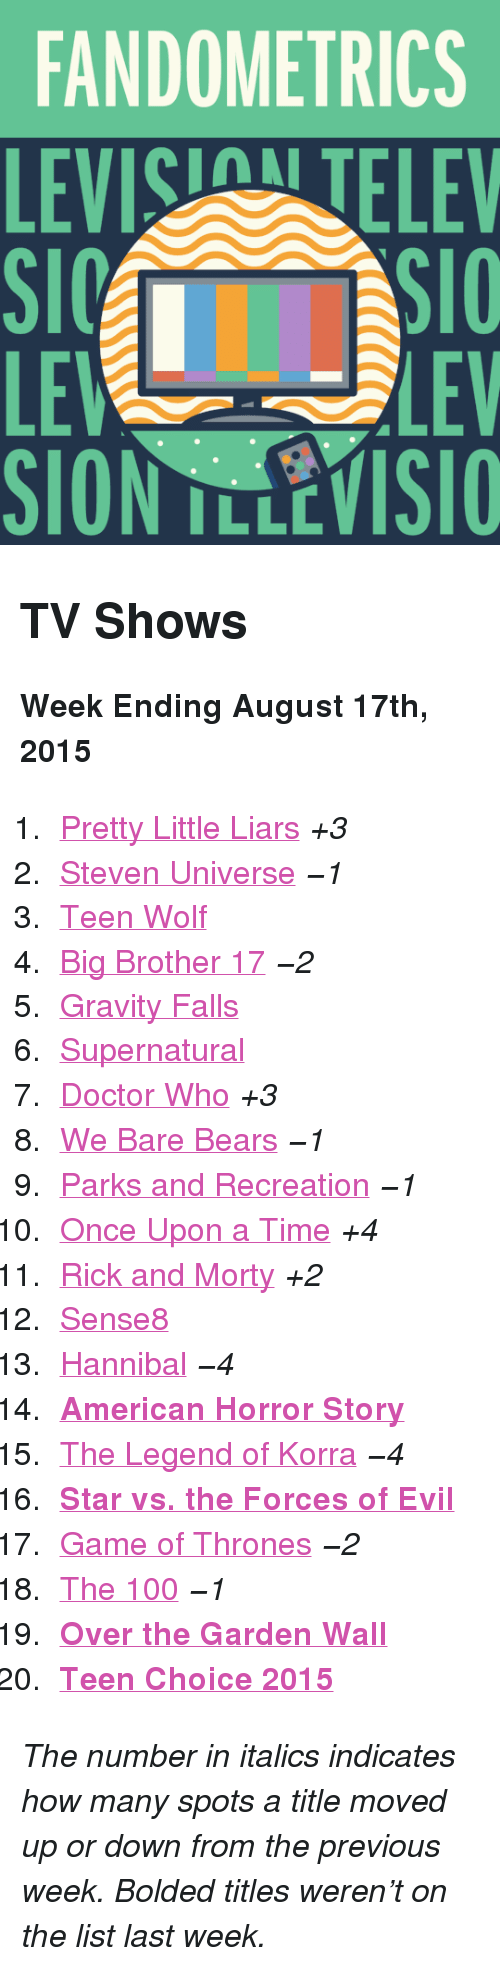 """Parks and Recreation: FANDOMETRICS  LEVIS TELEV  LE  SION TLLEVISIO  LEV <h2>TV Shows</h2><p><b>Week Ending August 17th, 2015</b></p><ol><li><a href=""""http://www.tumblr.com/search/pretty%20little%20liars"""">Pretty Little Liars</a><i>+3</i></li>  <li><a href=""""http://www.tumblr.com/search/steven%20universe"""">Steven Universe</a><i>−1</i></li>  <li><a href=""""http://www.tumblr.com/search/teen%20wolf"""">Teen Wolf</a></li>  <li><a href=""""http://www.tumblr.com/search/bb17"""">Big Brother 17</a><i>−2</i></li>  <li><a href=""""http://www.tumblr.com/search/gravity%20falls"""">Gravity Falls</a></li>  <li><a href=""""http://www.tumblr.com/search/supernatural"""">Supernatural</a></li>  <li><a href=""""http://www.tumblr.com/search/doctor%20who"""">Doctor Who</a><i>+3</i></li>  <li><a href=""""http://www.tumblr.com/search/we%20bare%20bears"""">We Bare Bears</a><i>−1</i></li>  <li><a href=""""http://www.tumblr.com/search/parks%20and%20recreation"""">Parks and Recreation</a><i>−1</i></li>  <li><a href=""""http://www.tumblr.com/search/ouat"""">Once Upon a Time</a><i>+4</i></li>  <li><a href=""""http://www.tumblr.com/search/rick%20and%20morty"""">Rick and Morty</a><i>+2</i></li>  <li><a href=""""http://www.tumblr.com/search/sense8"""">Sense8</a></li>  <li><a href=""""http://www.tumblr.com/search/hannibal"""">Hannibal</a><i>−4</i></li>  <li><a href=""""http://www.tumblr.com/search/american%20horror%20story""""><b>American Horror Story</b></a></li>  <li><a href=""""http://www.tumblr.com/search/legend%20of%20korra"""">The Legend of Korra</a><i>−4</i></li>  <li><a href=""""http://www.tumblr.com/search/star%20vs%20the%20forces%20of%20evil""""><b>Star vs. the Forces of Evil</b></a></li>  <li><a href=""""http://www.tumblr.com/search/game%20of%20thrones"""">Game of Thrones</a><i>−2</i></li>  <li><a href=""""http://www.tumblr.com/search/the%20100"""">The 100</a><i>−1</i></li>  <li><a href=""""http://www.tumblr.com/search/over%20the%20garden%20wall""""><b>Over the Garden Wall</b></a></li>  <li><a href=""""http://www.tumblr.com/search/teen%20choice%20awards""""><b>Teen Choice 2015</b></a></li></ol><p>"""